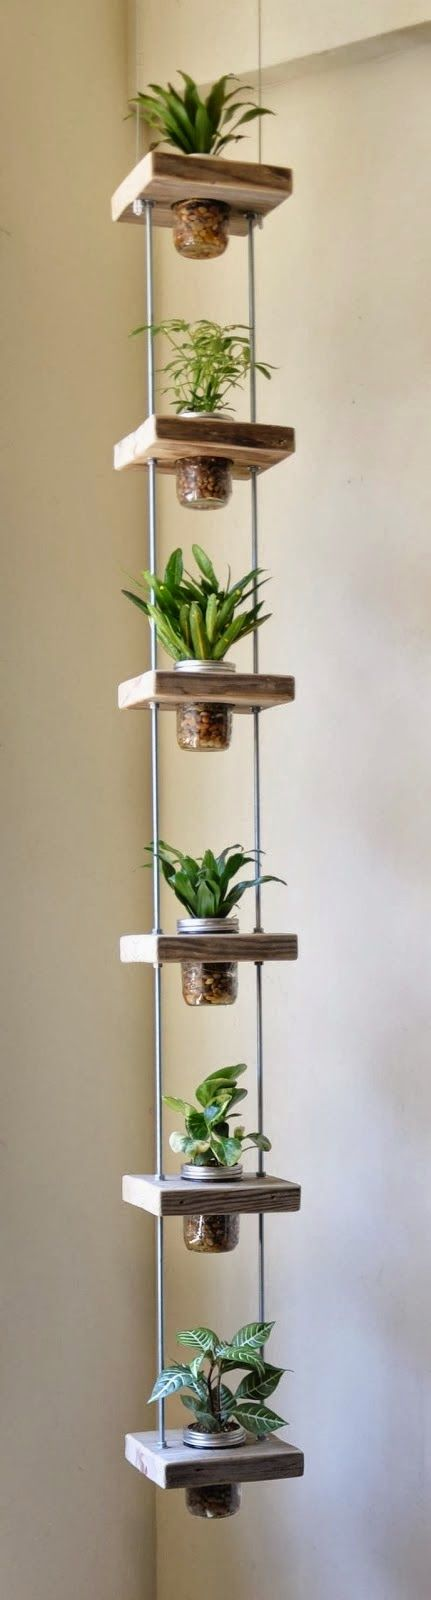 Inspiration Vertical Garden .herb garden in kitchen?